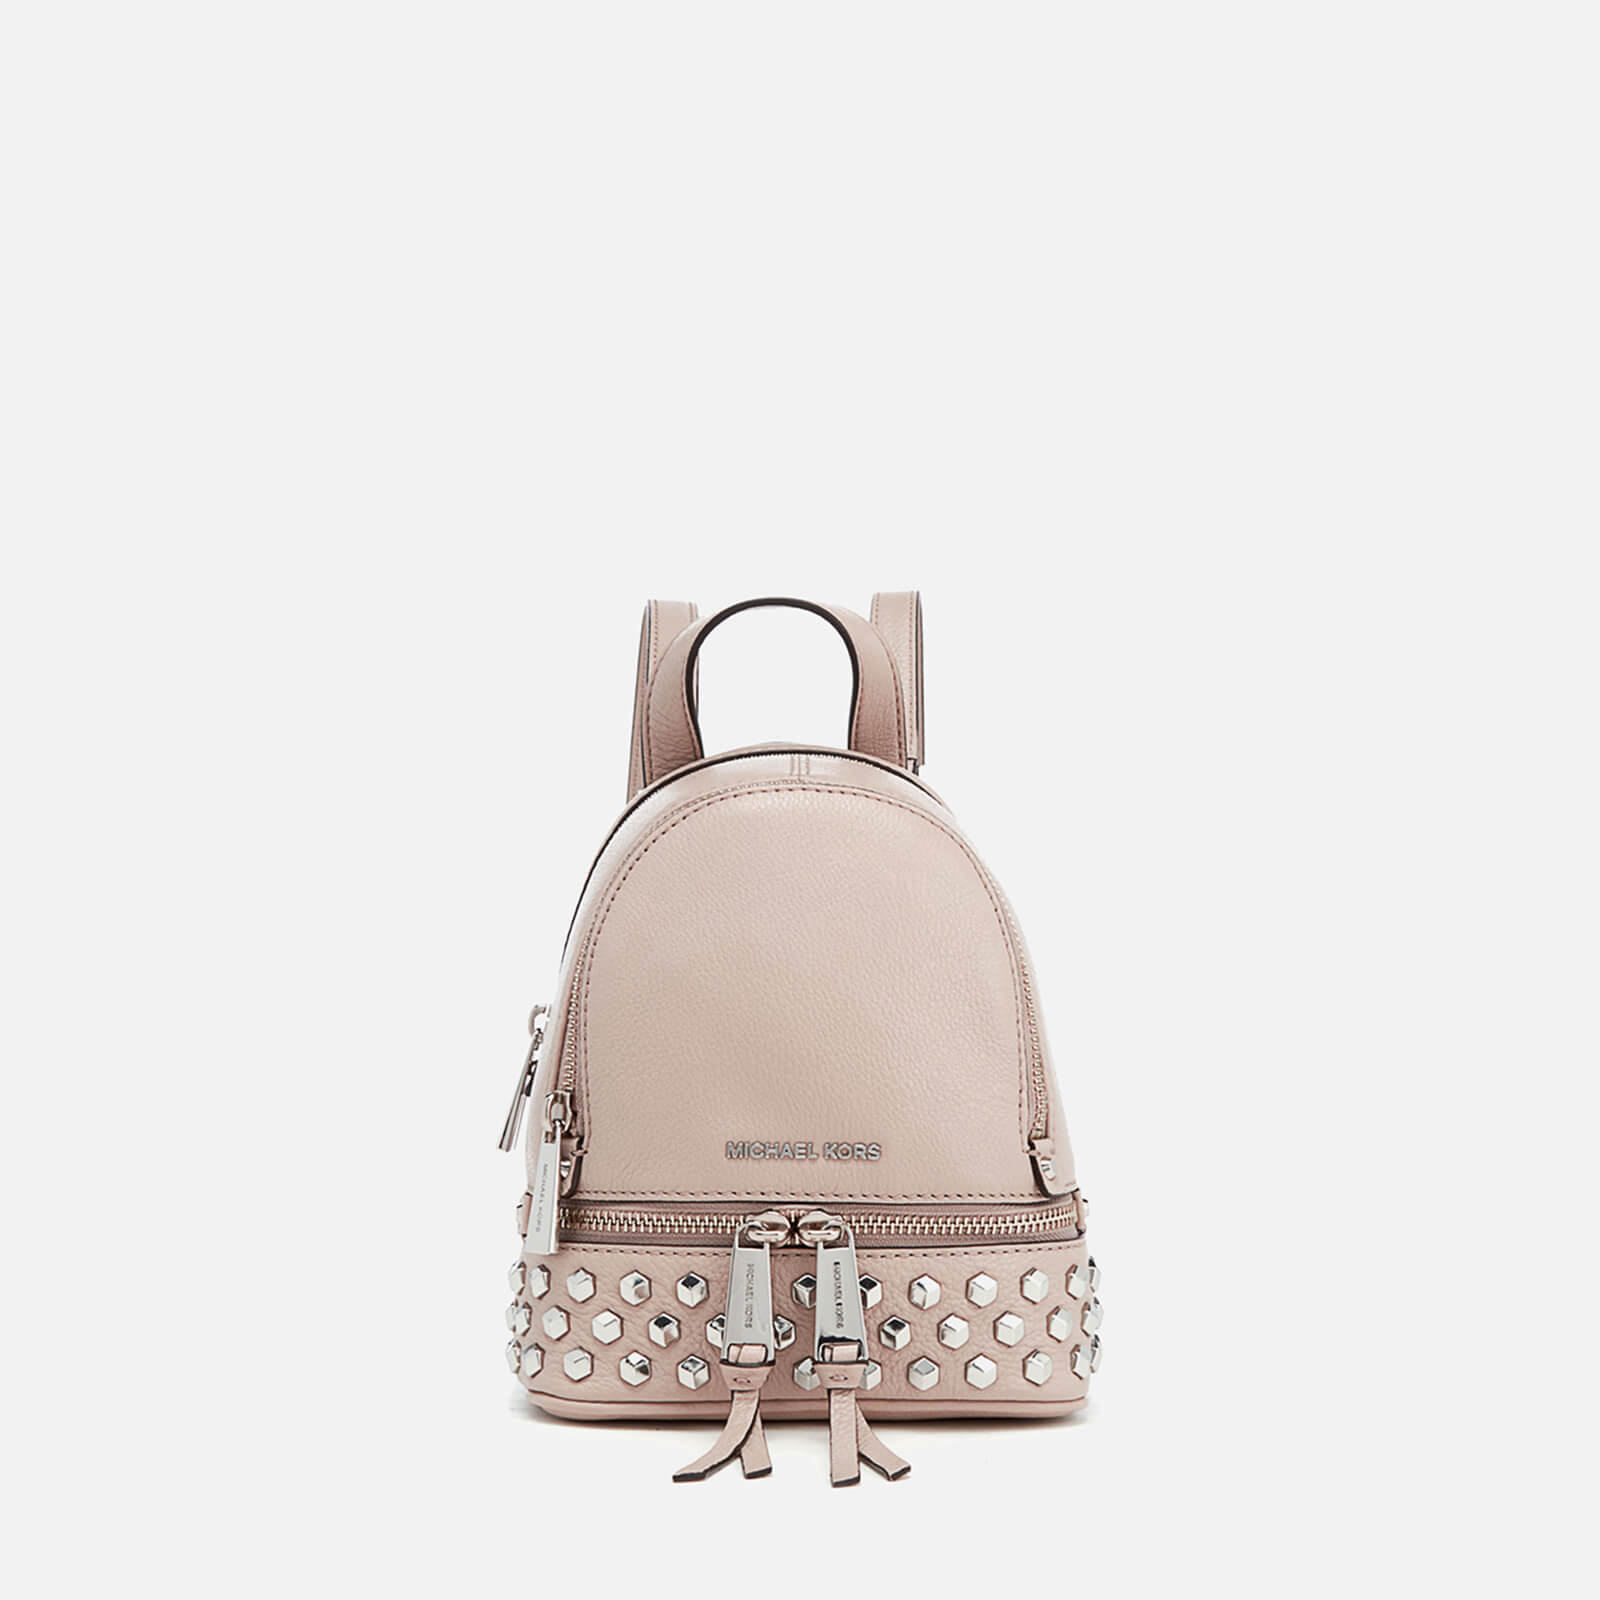 fb31f4834492 MICHAEL MICHAEL KORS Women s Rhea Zip Studded XS Messenger Backpack - Cement  - Free UK Delivery over £50